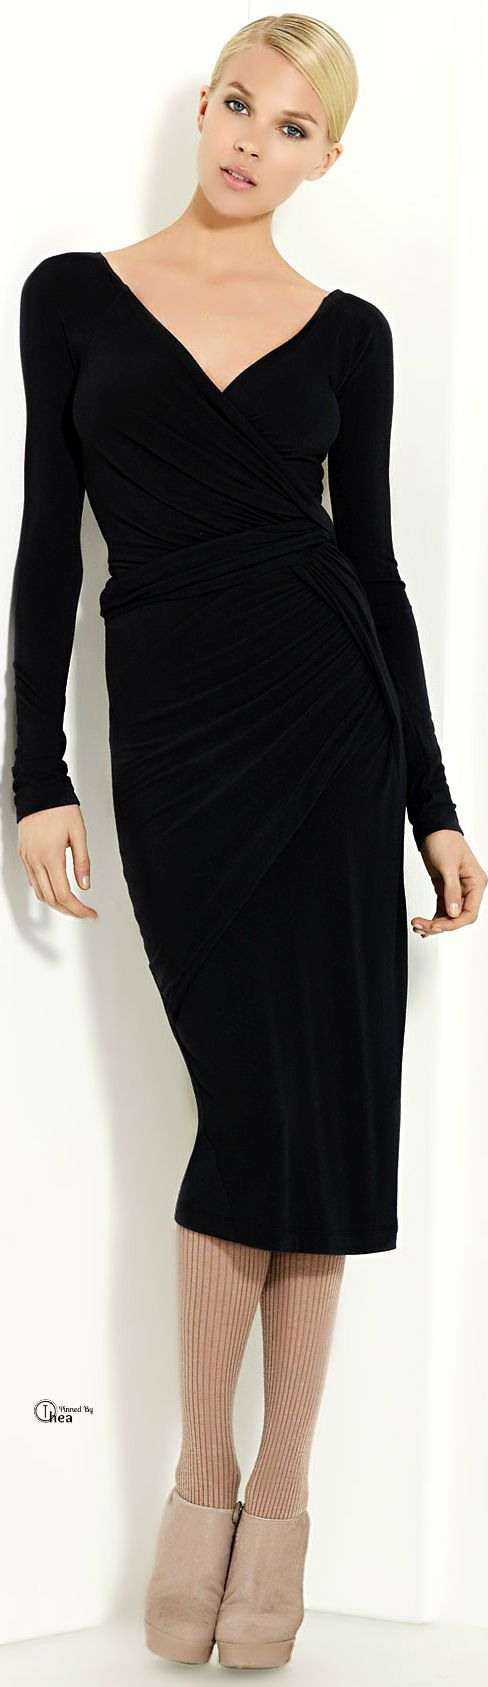 I'm afraid I don't like the shoes or tights but the dress is delicious  Donna Karan ● Draped Jersey Dress